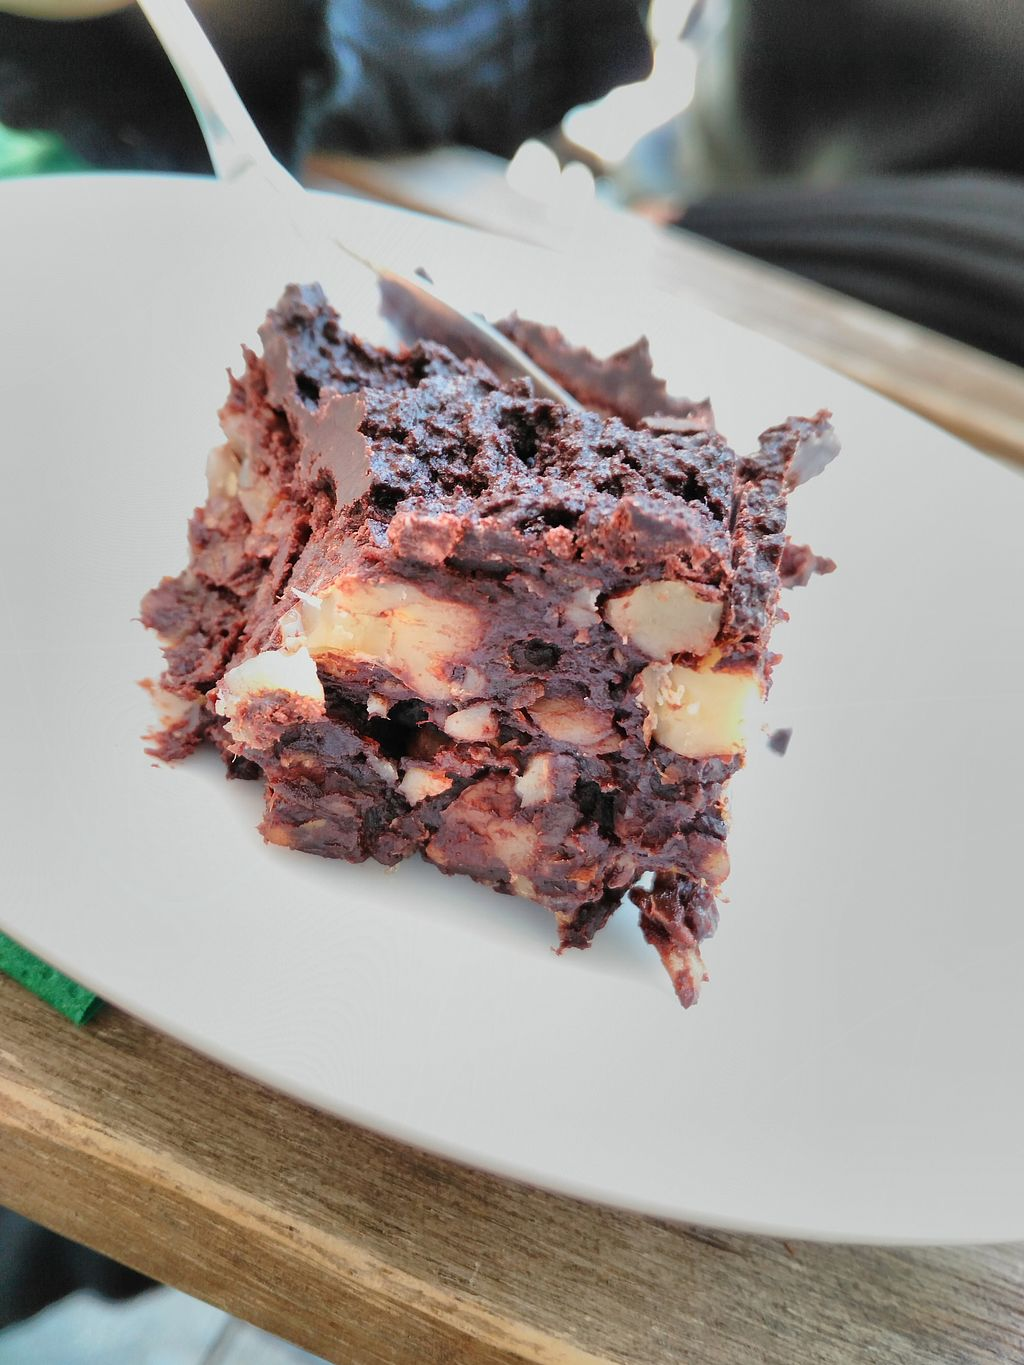 """Photo of Cafe Vert  by <a href=""""/members/profile/AudreyA"""">AudreyA</a> <br/>This raw chocolate brownie was to die for <br/> September 7, 2017  - <a href='/contact/abuse/image/82634/301719'>Report</a>"""